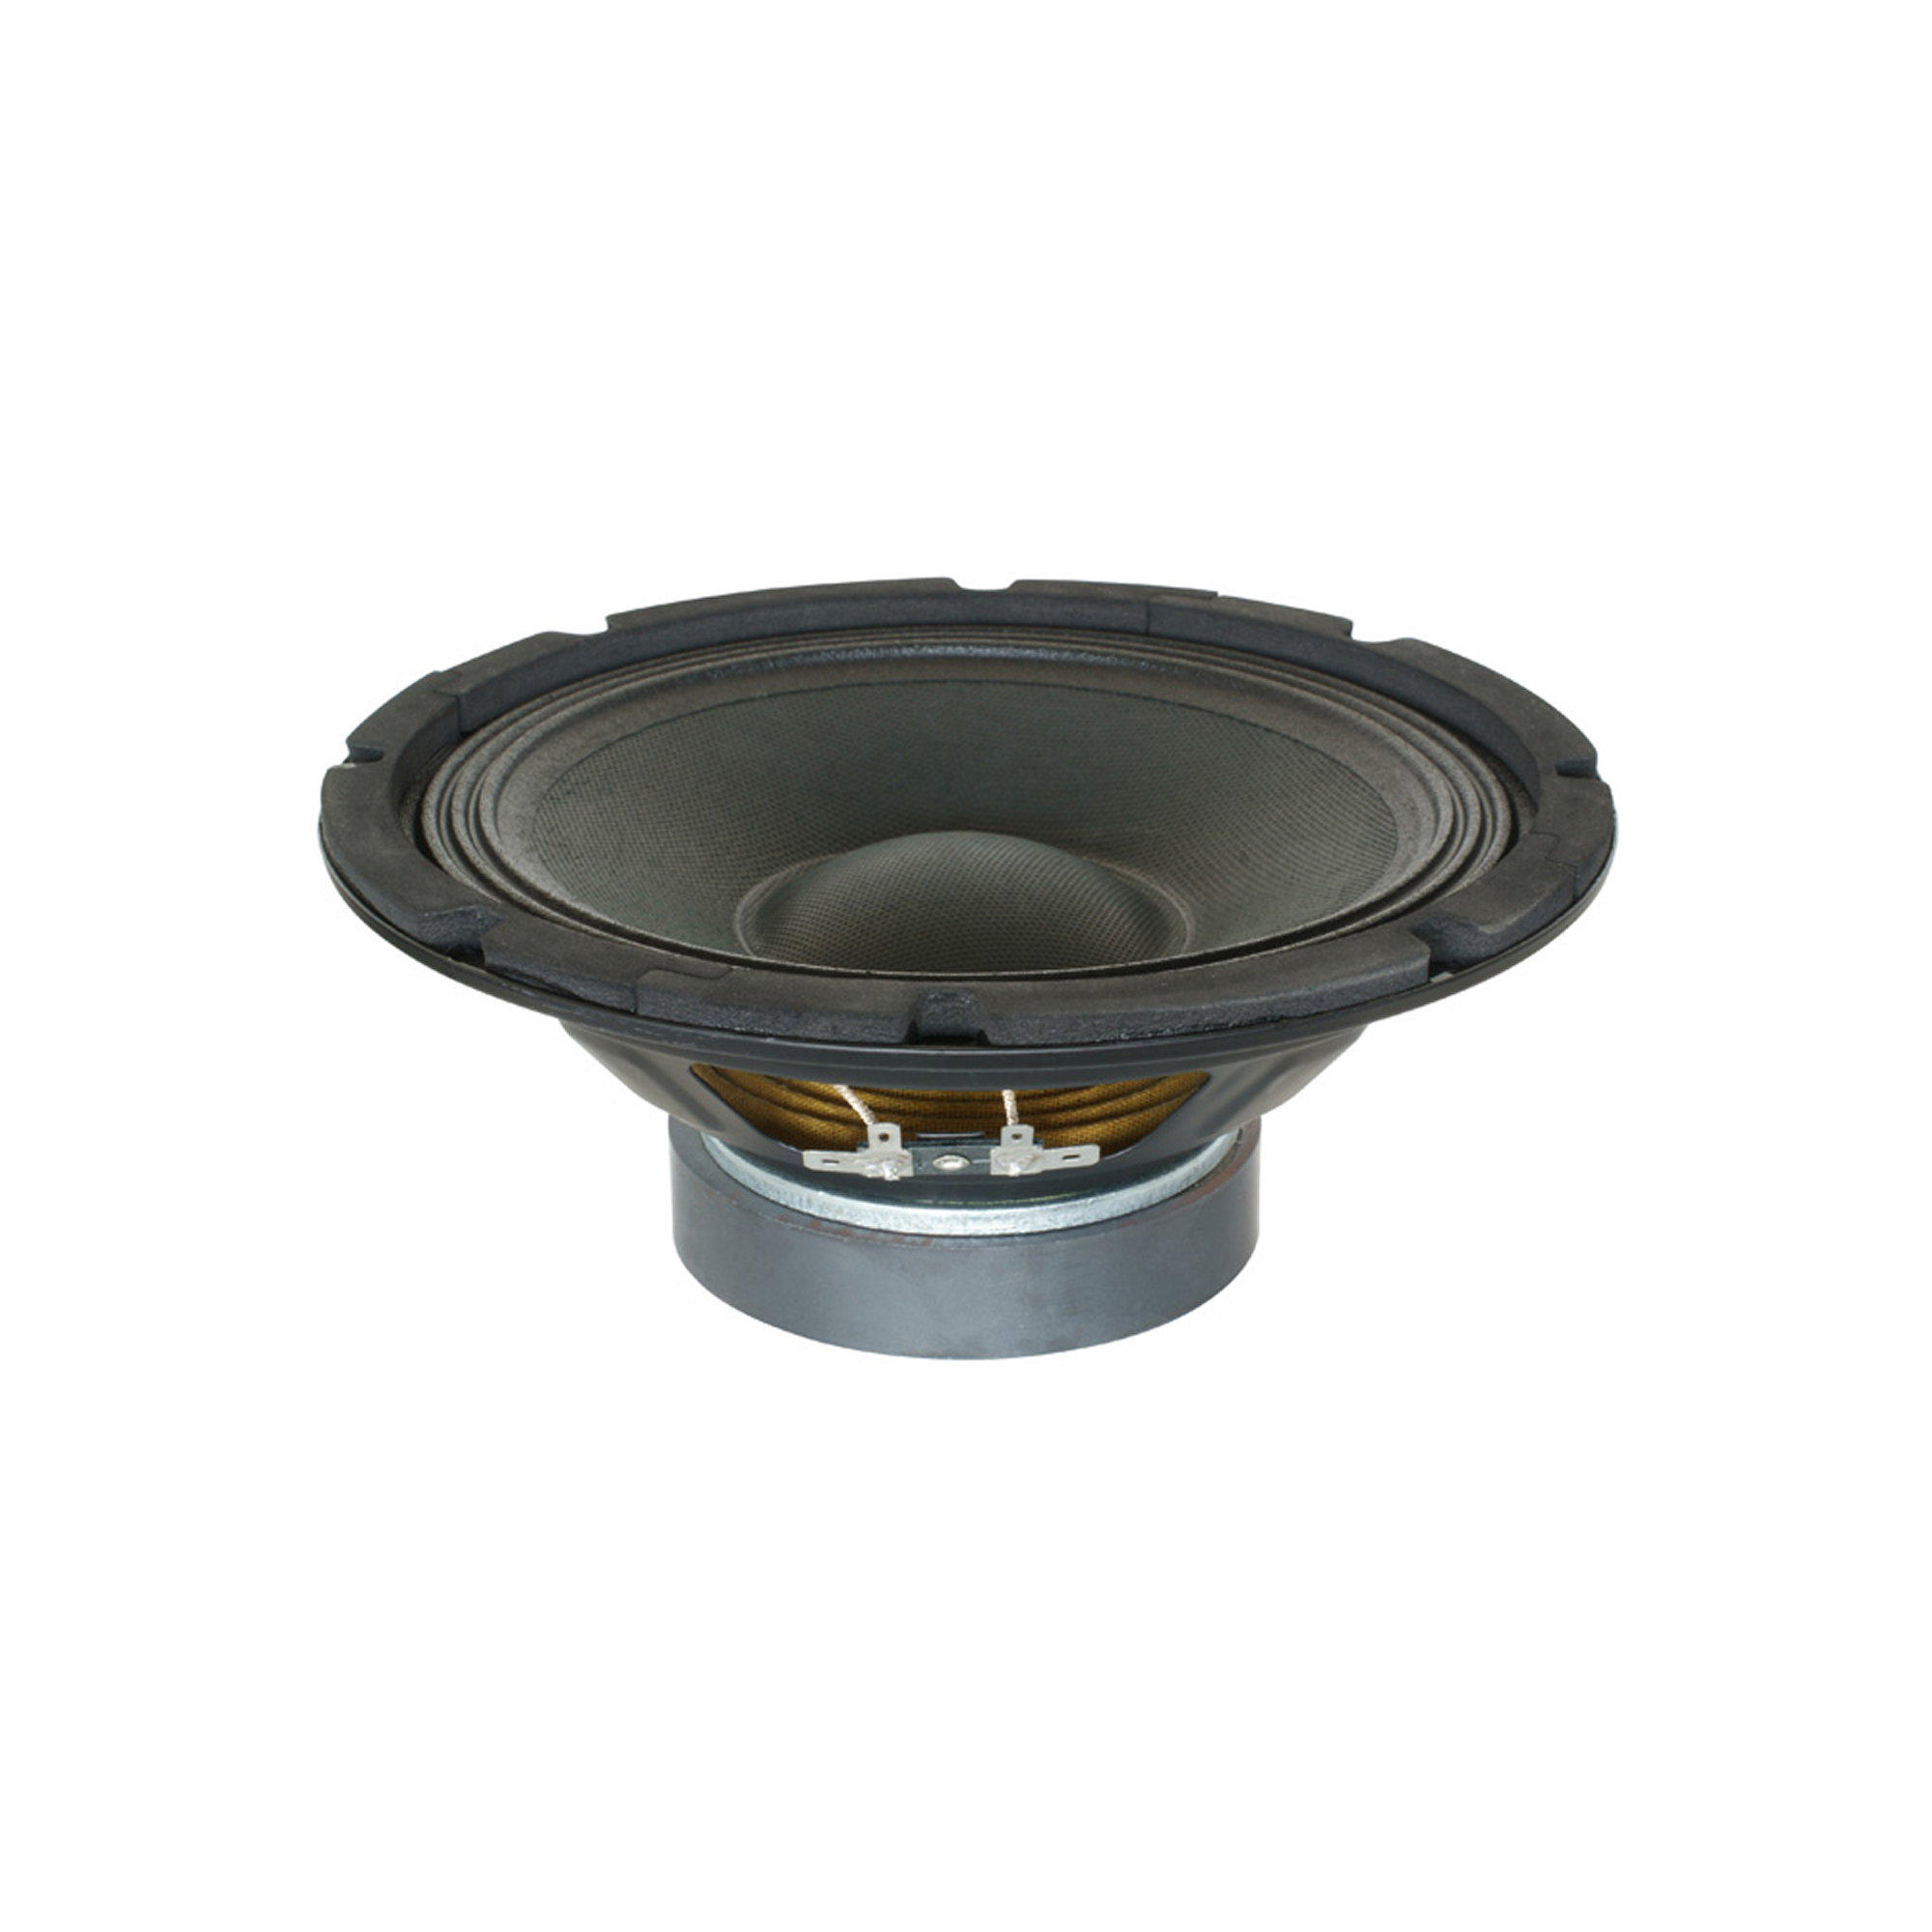 """Skytec SP800 8"""" Chassic Speaker Cone Replacement Driver 100W"""